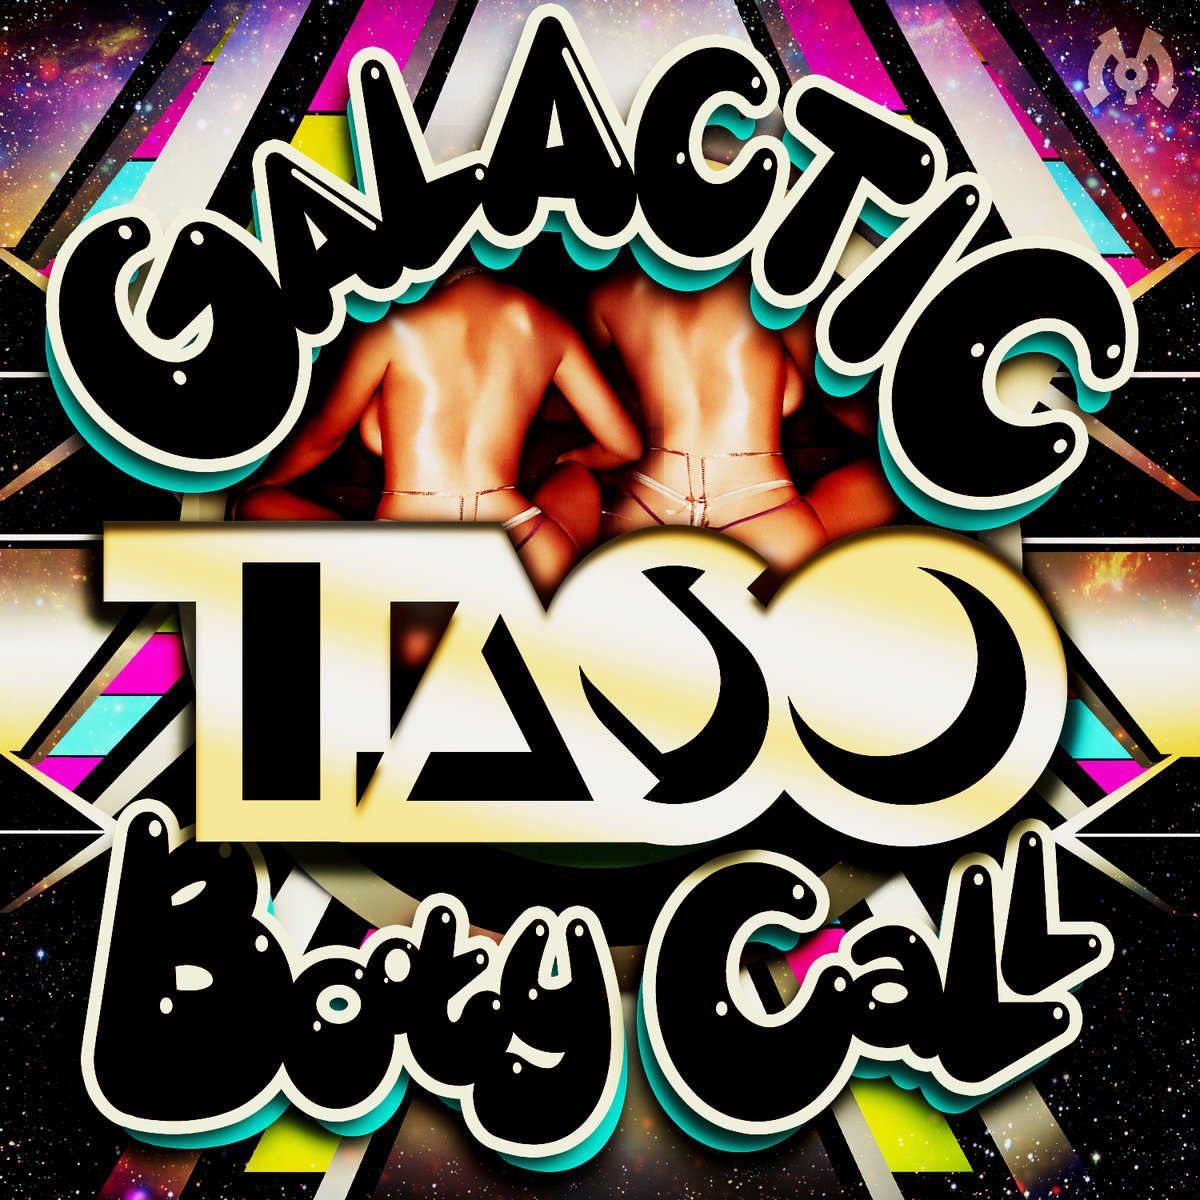 Taso - Battle Beat (Intro Beat) @ 'Galatic Booty Call' album (electronic, dubstep)